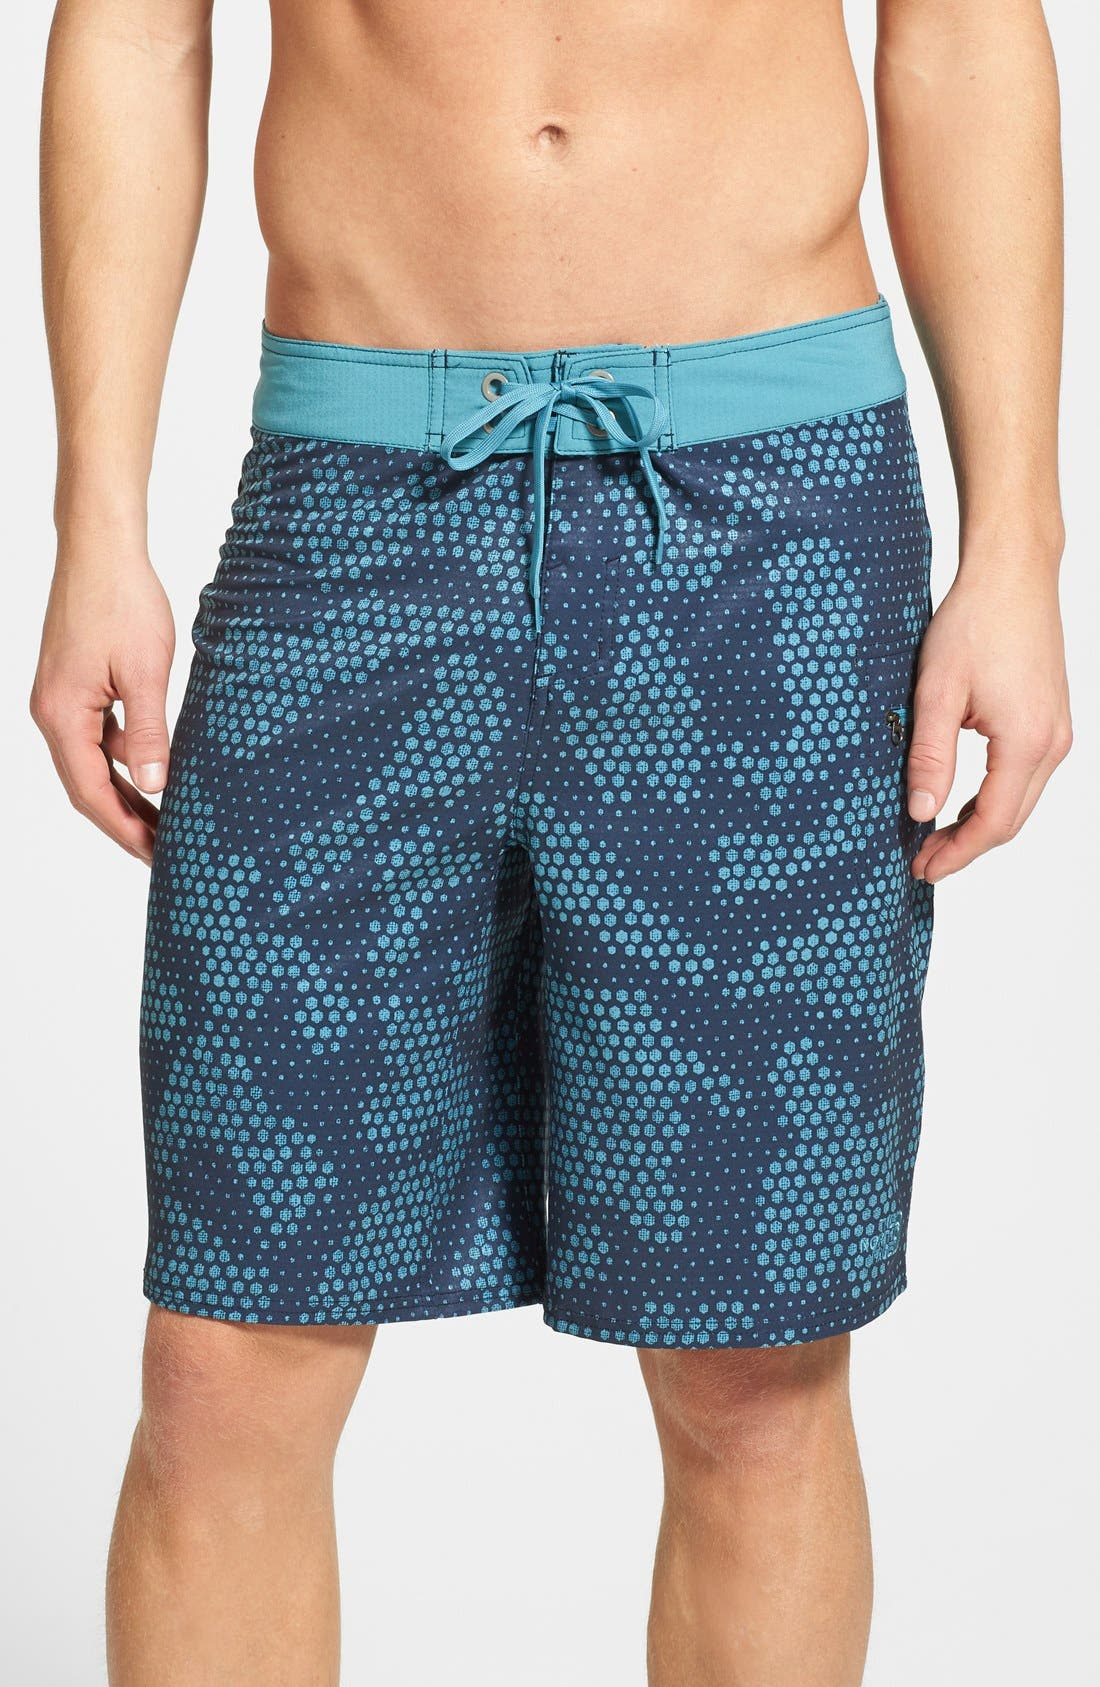 Alternate Image 1 Selected - The North Face 'Olas' Board Shorts